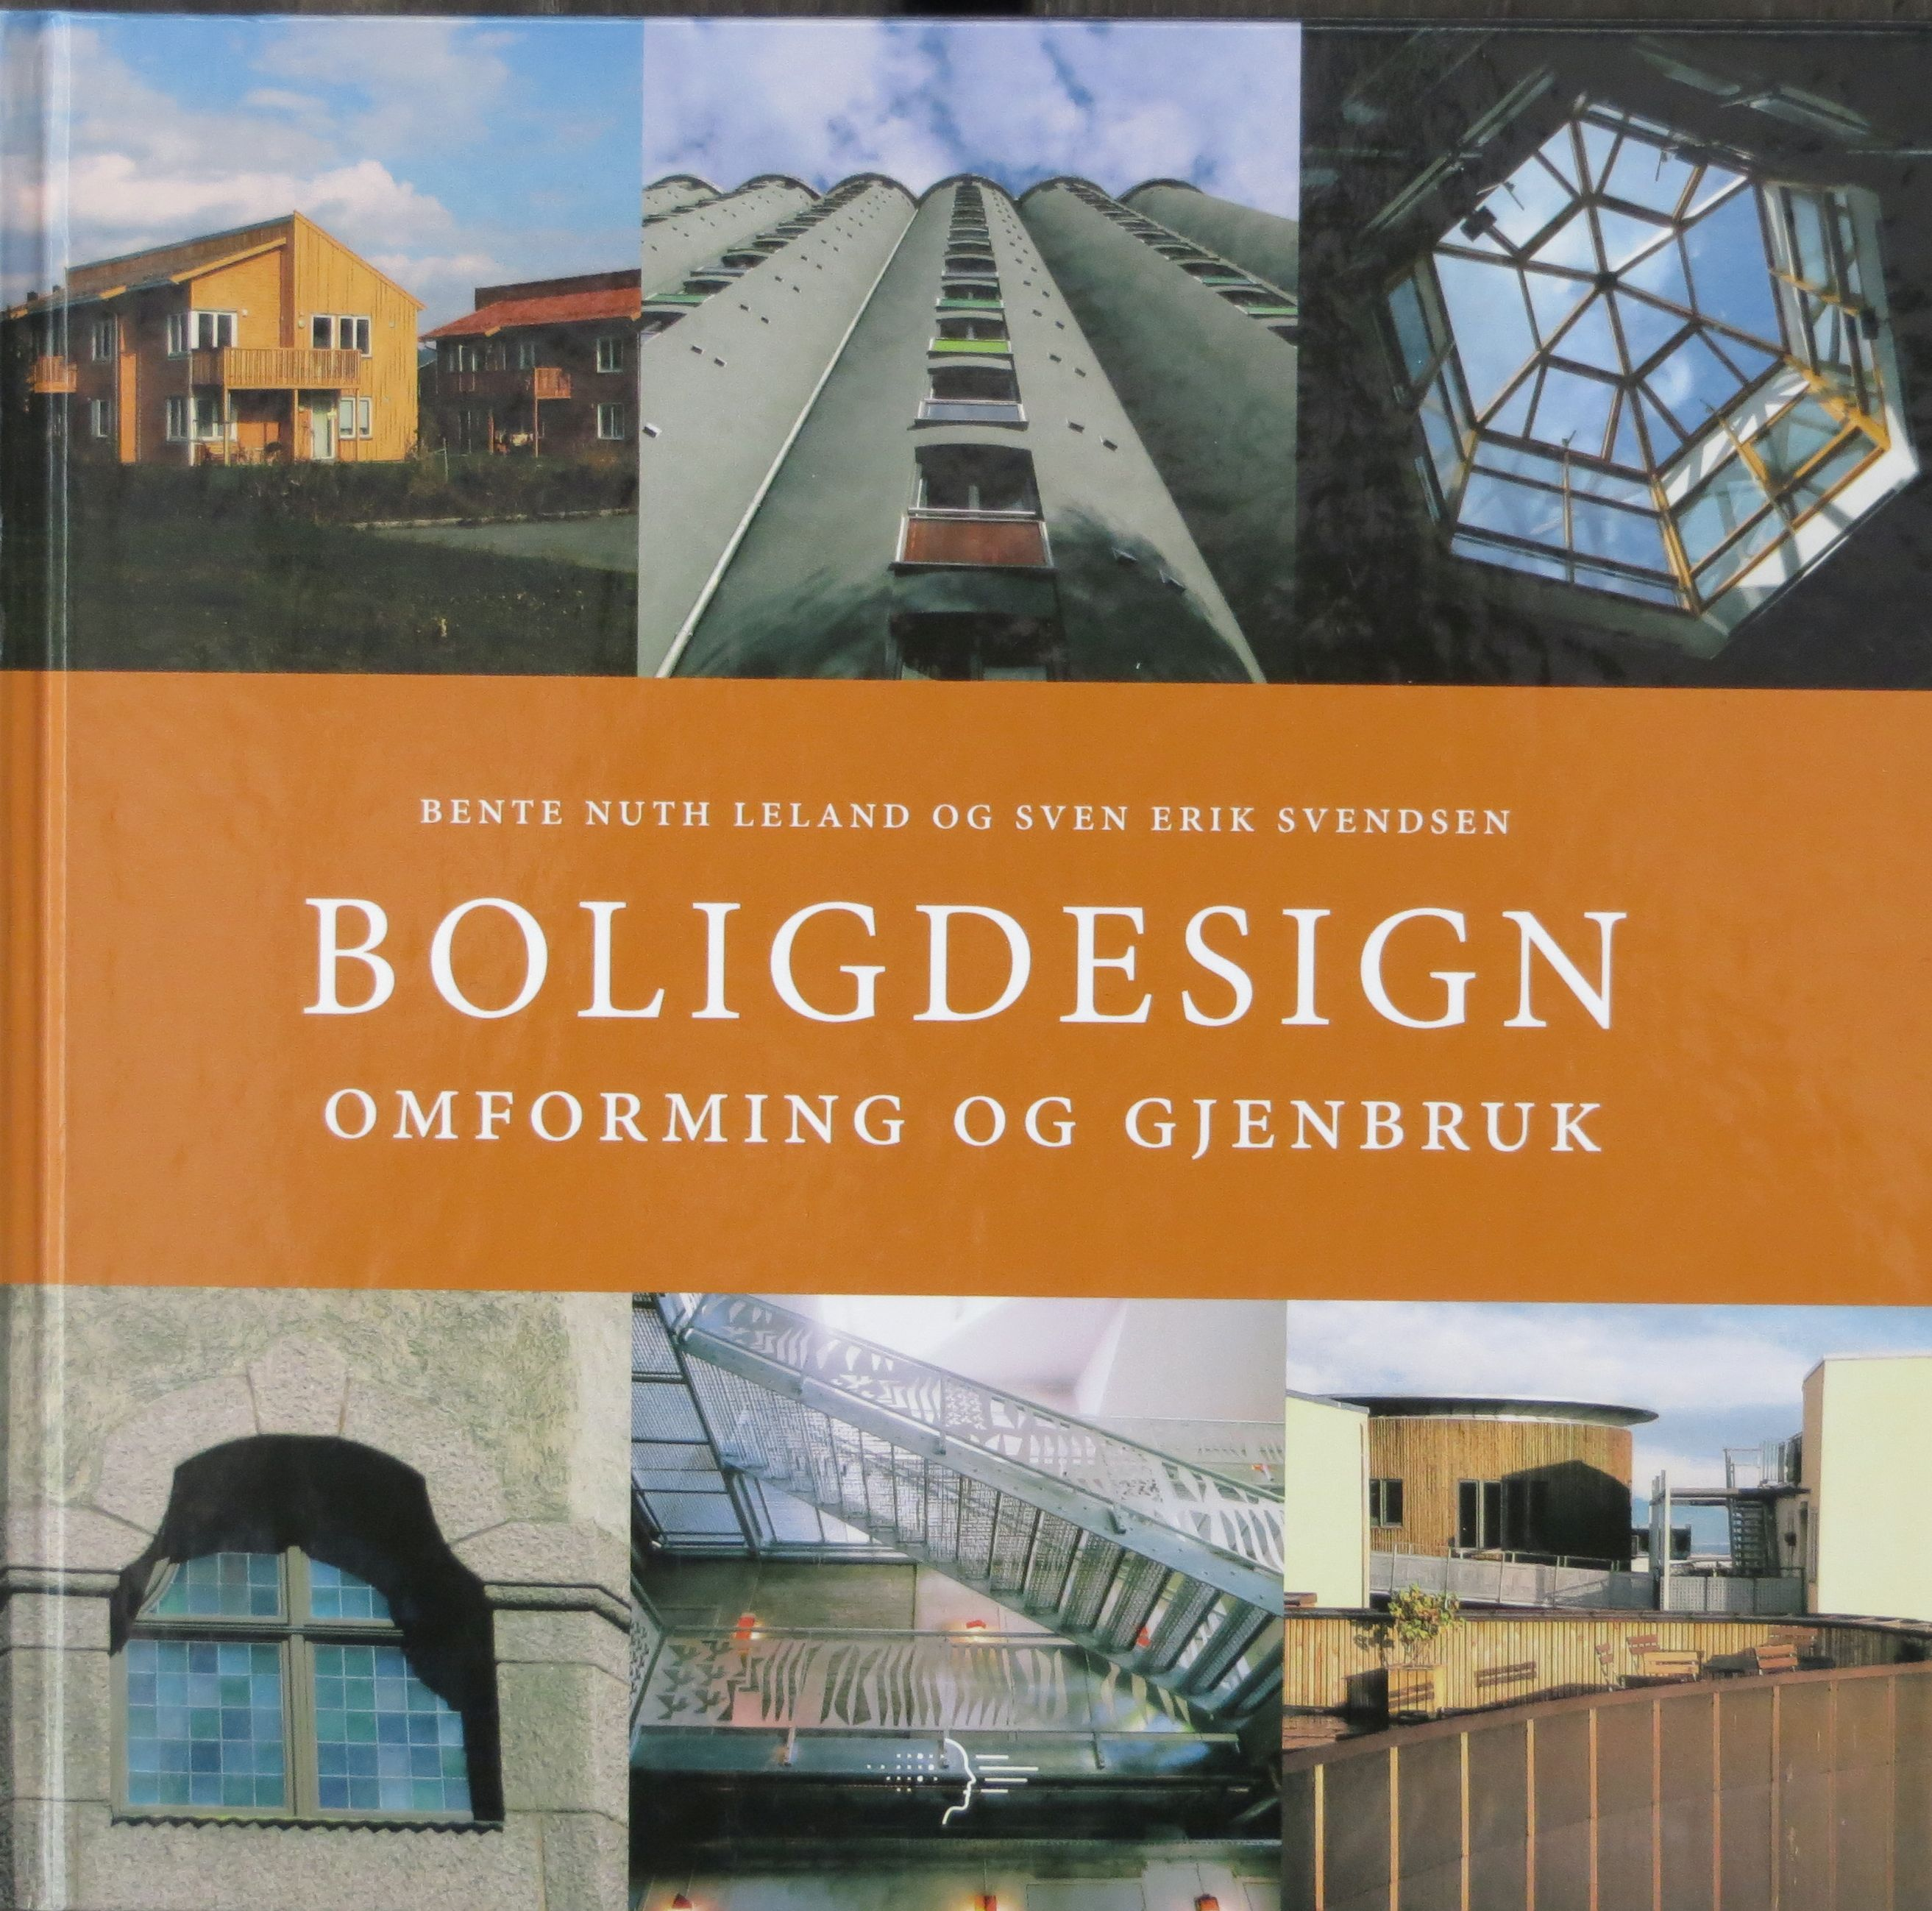 Book by Bente Leland